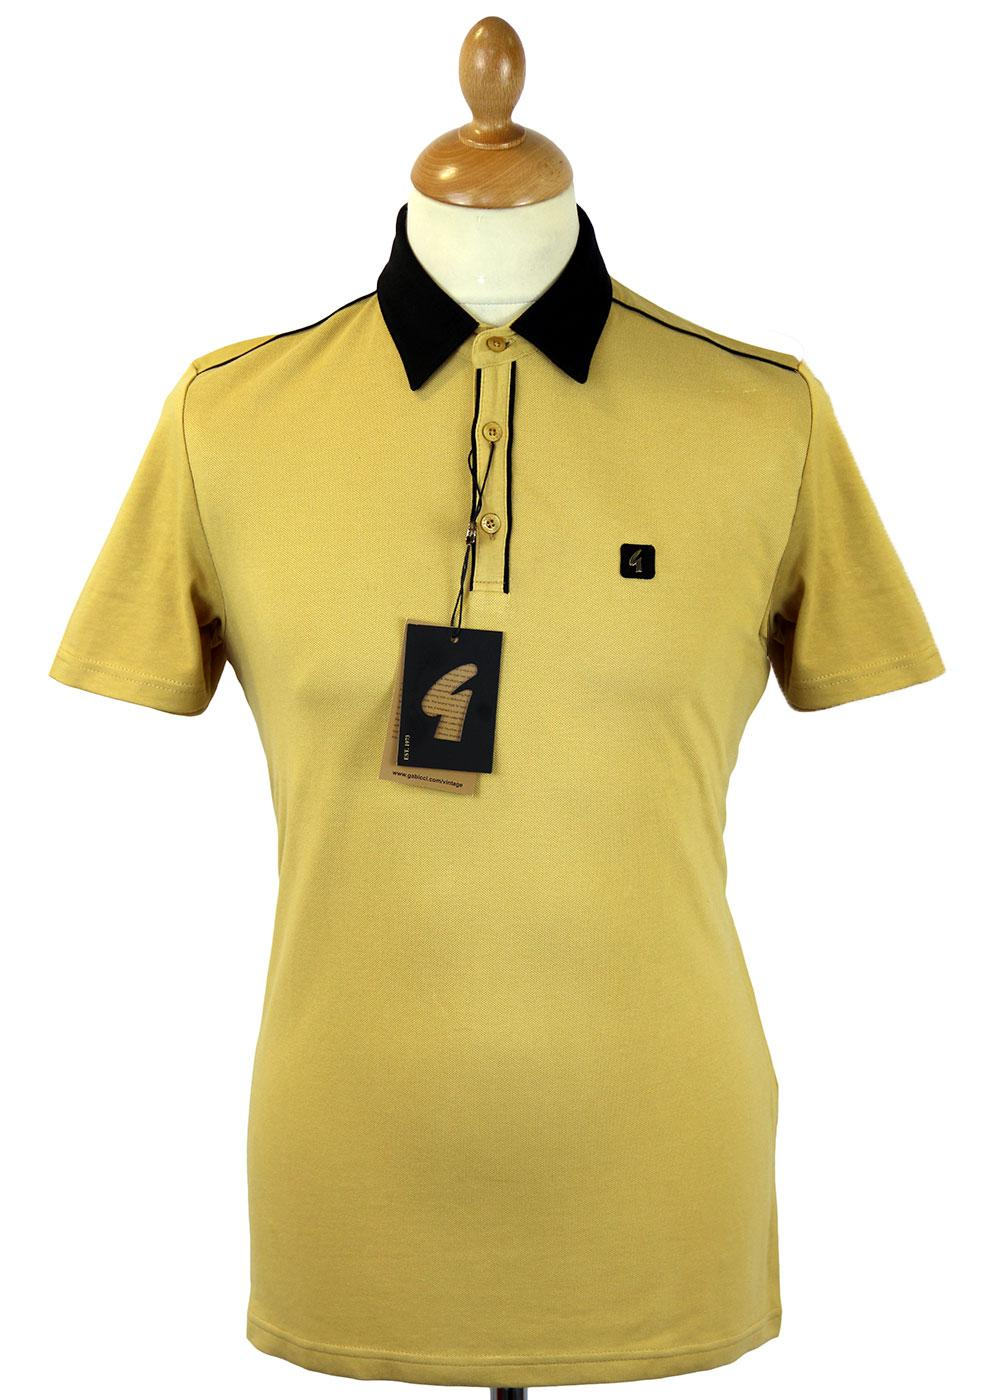 GABICCI VINTAGE Tipped Placket Retro Mod Polo (C)